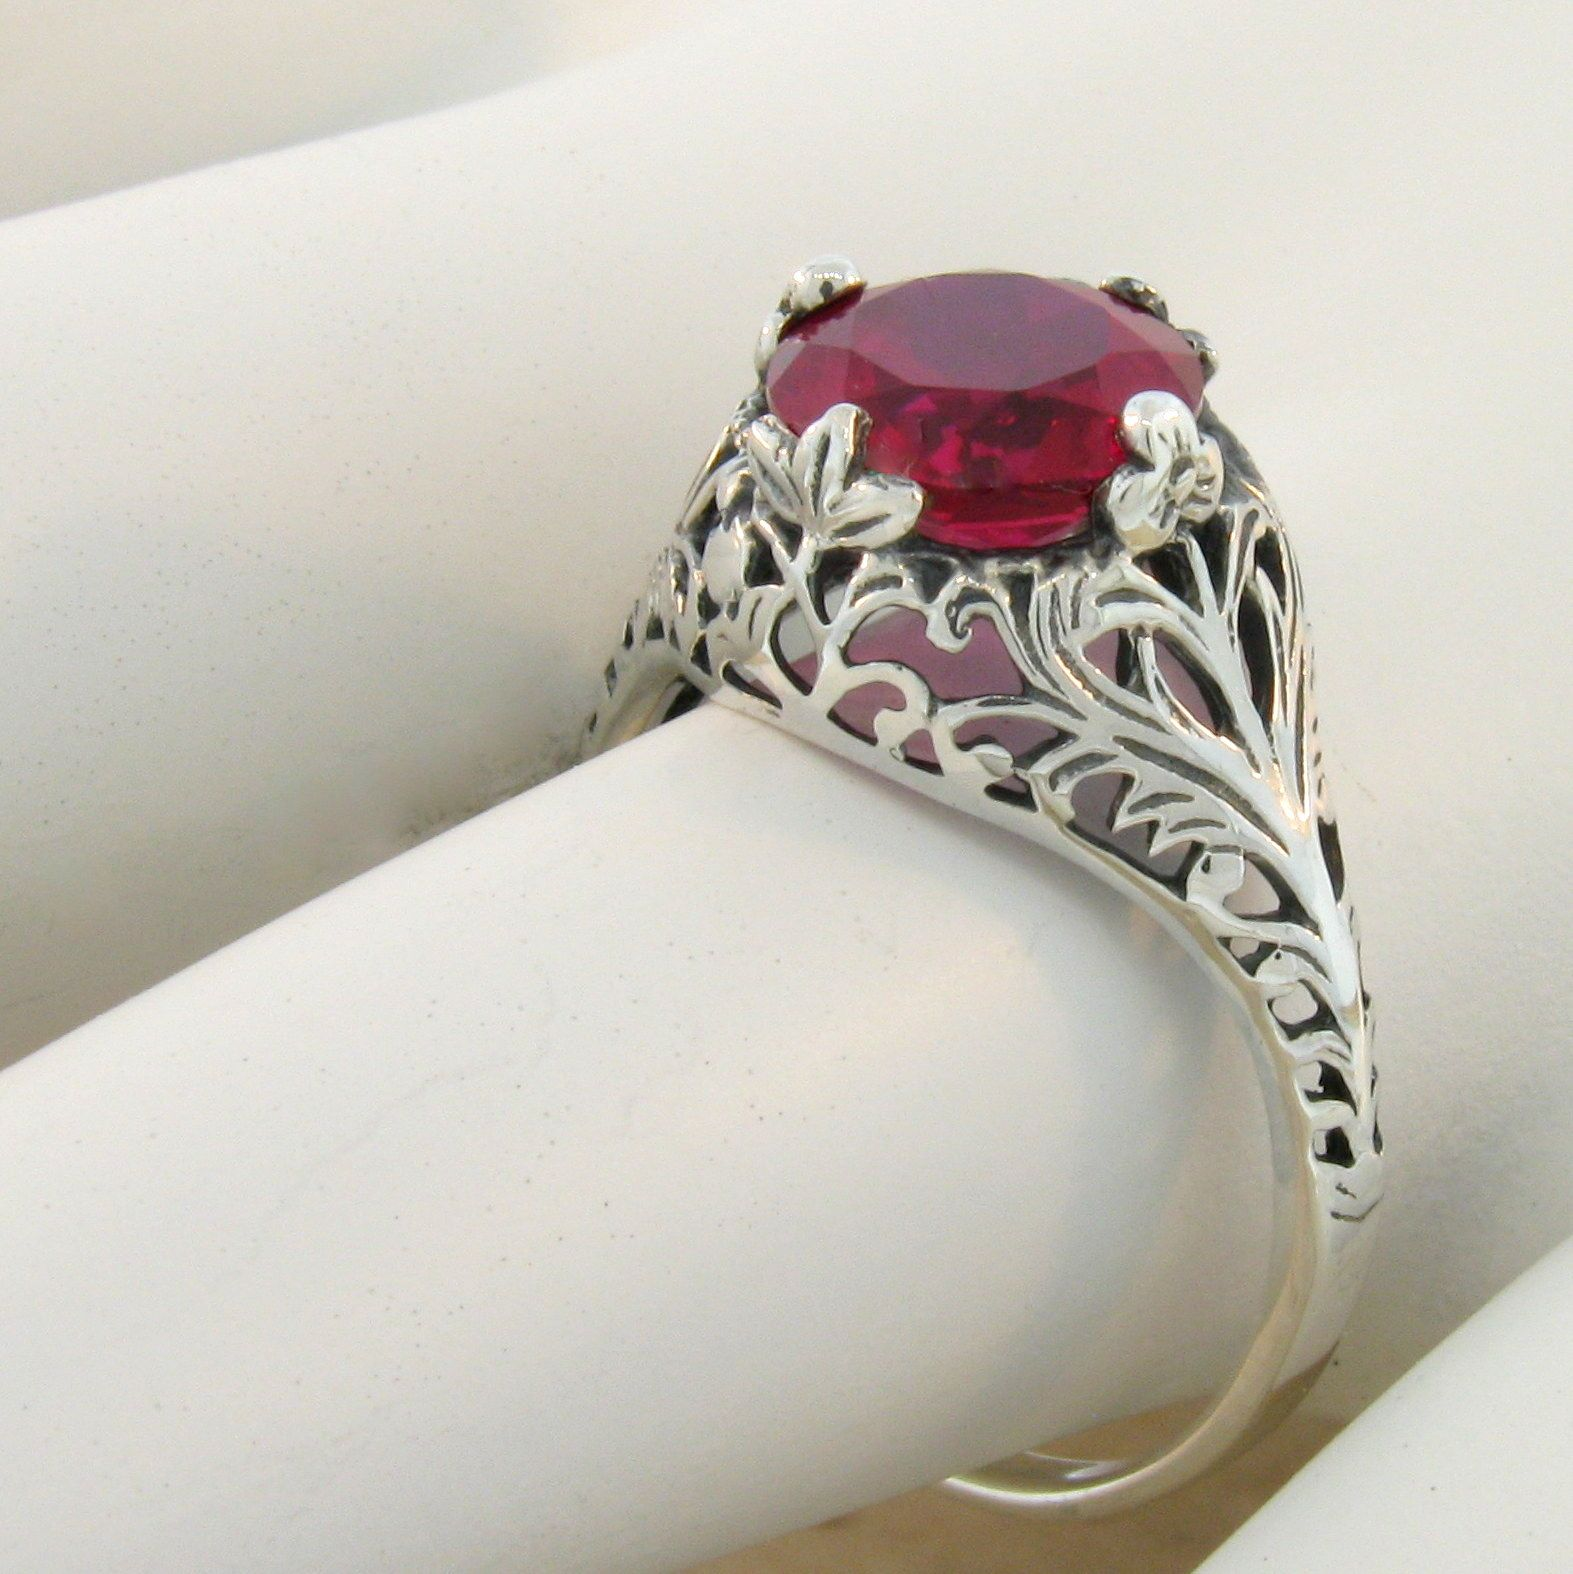 healing s ruby ring heart sterling atperry product products jewellery silver red crystals image